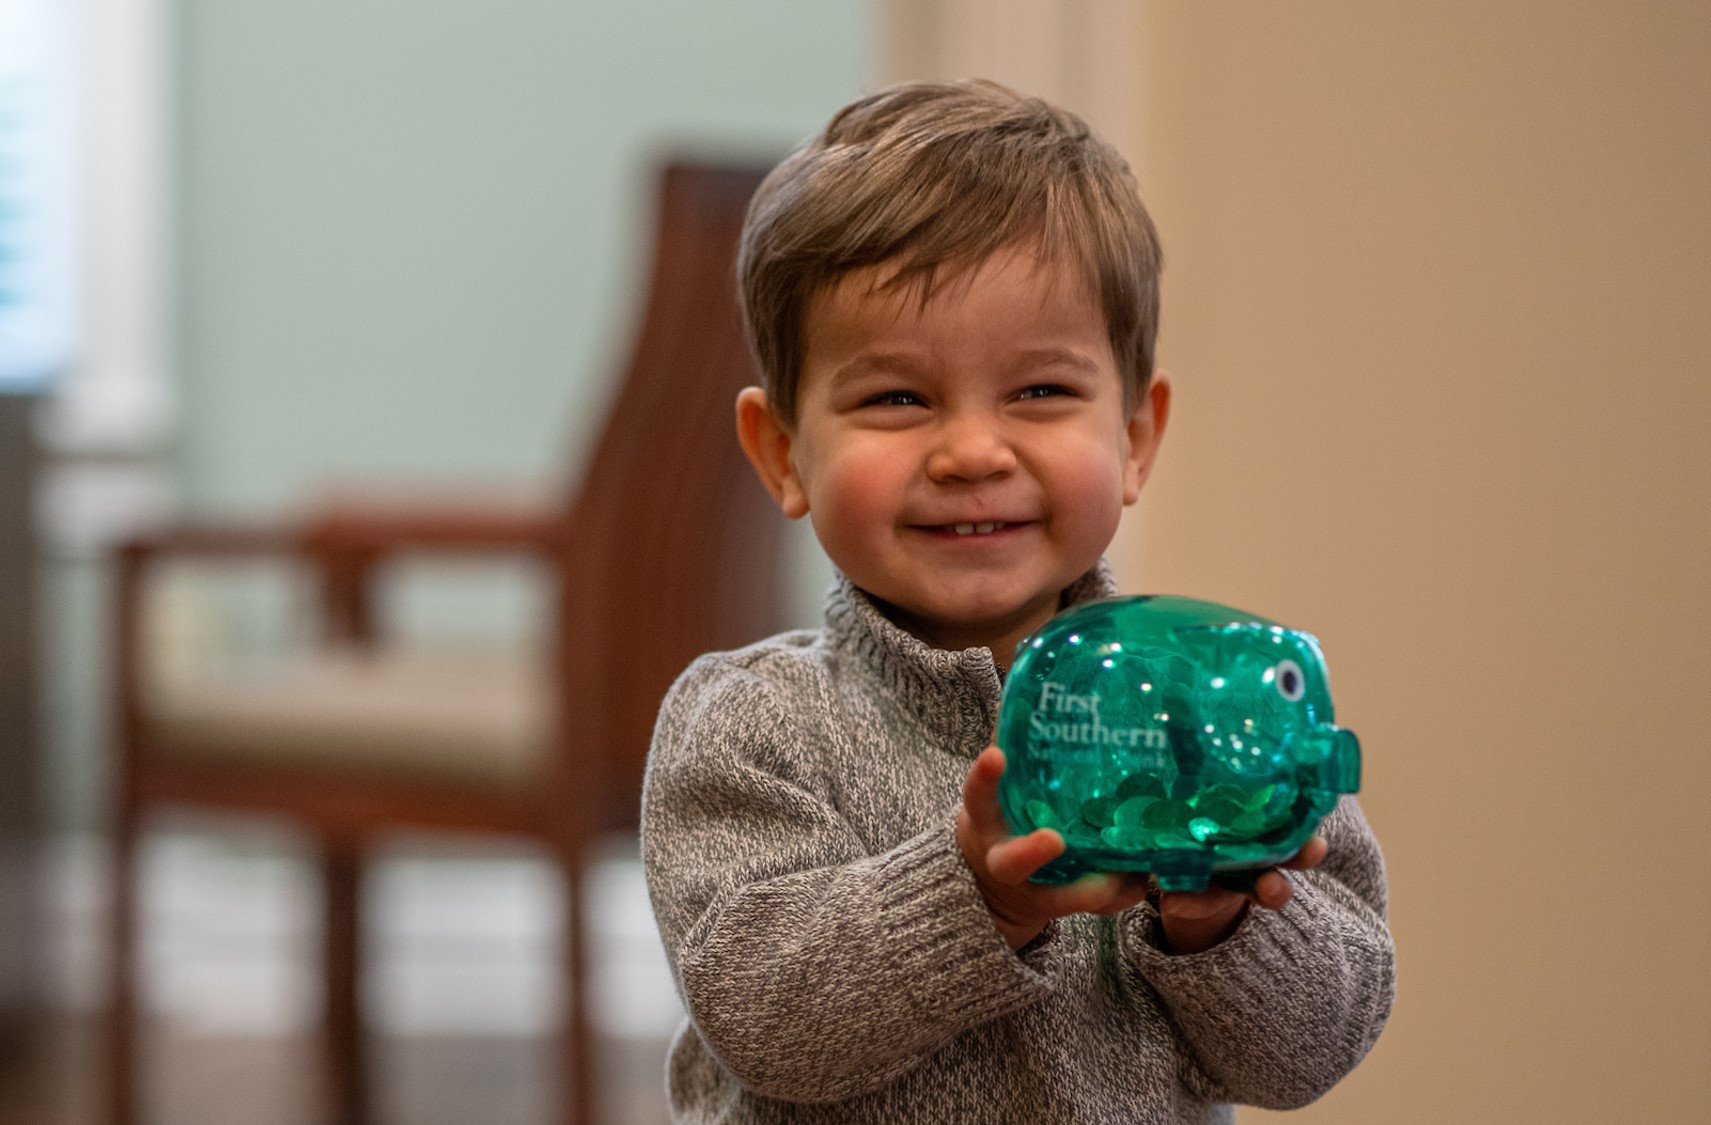 little boy holds a piggy bank with First Southern on it